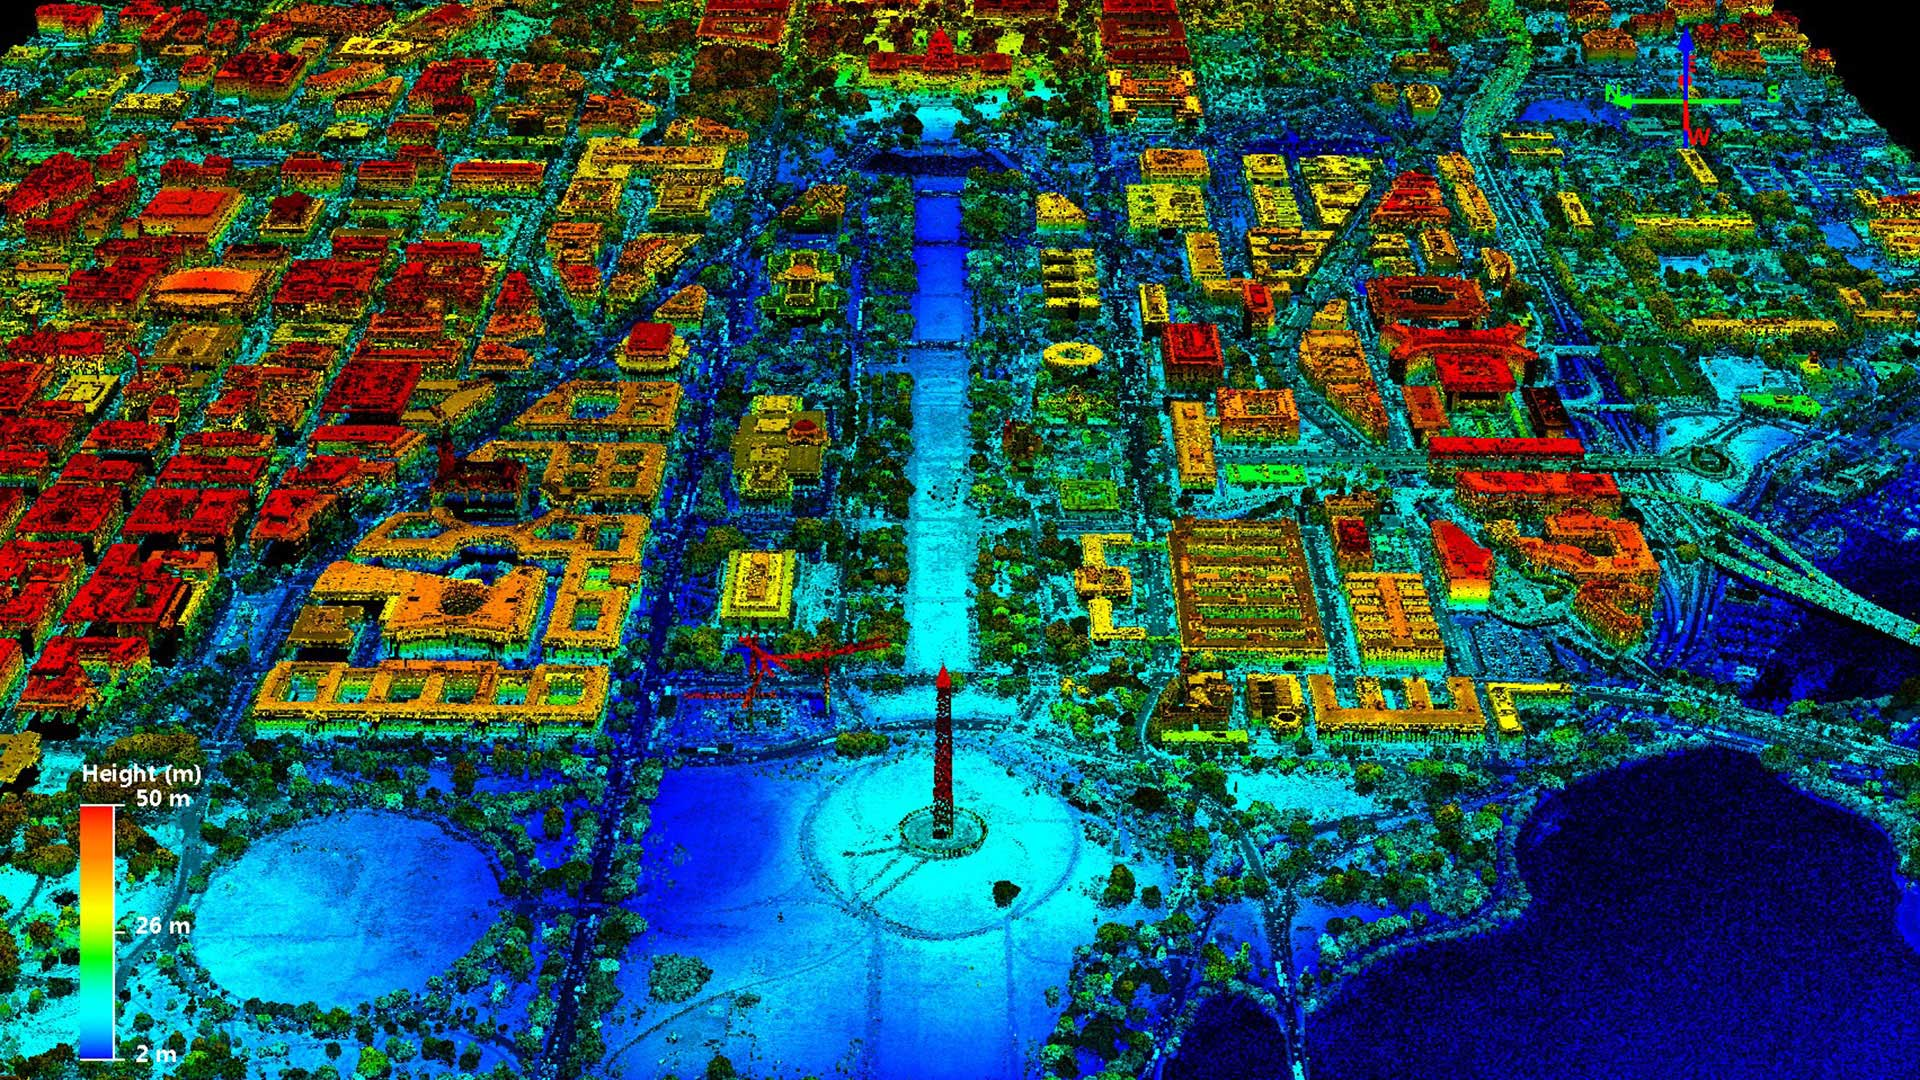 "A 2017 lidar ""point cloud"" image of the Washington Mall in Washington, D.C. Advances in remote sensing technologies are changing the types and quantity of data available to researchers."